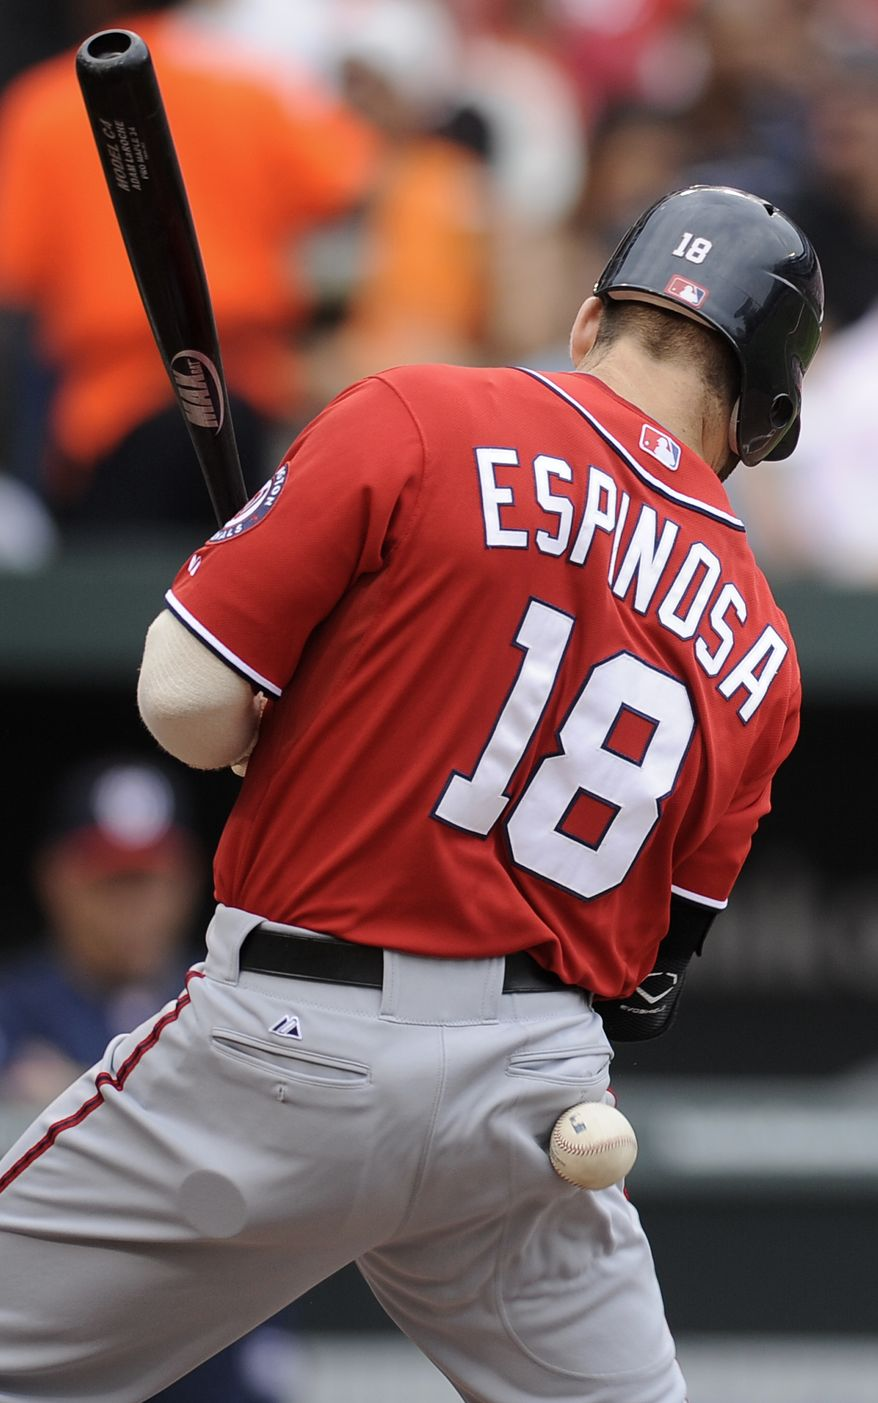 Washington Nationals' Danny Espinosa is hit by a pitch during the fourth inning of a baseball game against the Baltimore Orioles. Espinosa is the National League's leader in hit-by-pitches with 12 on the year.  (AP Photo/Nick Wass)